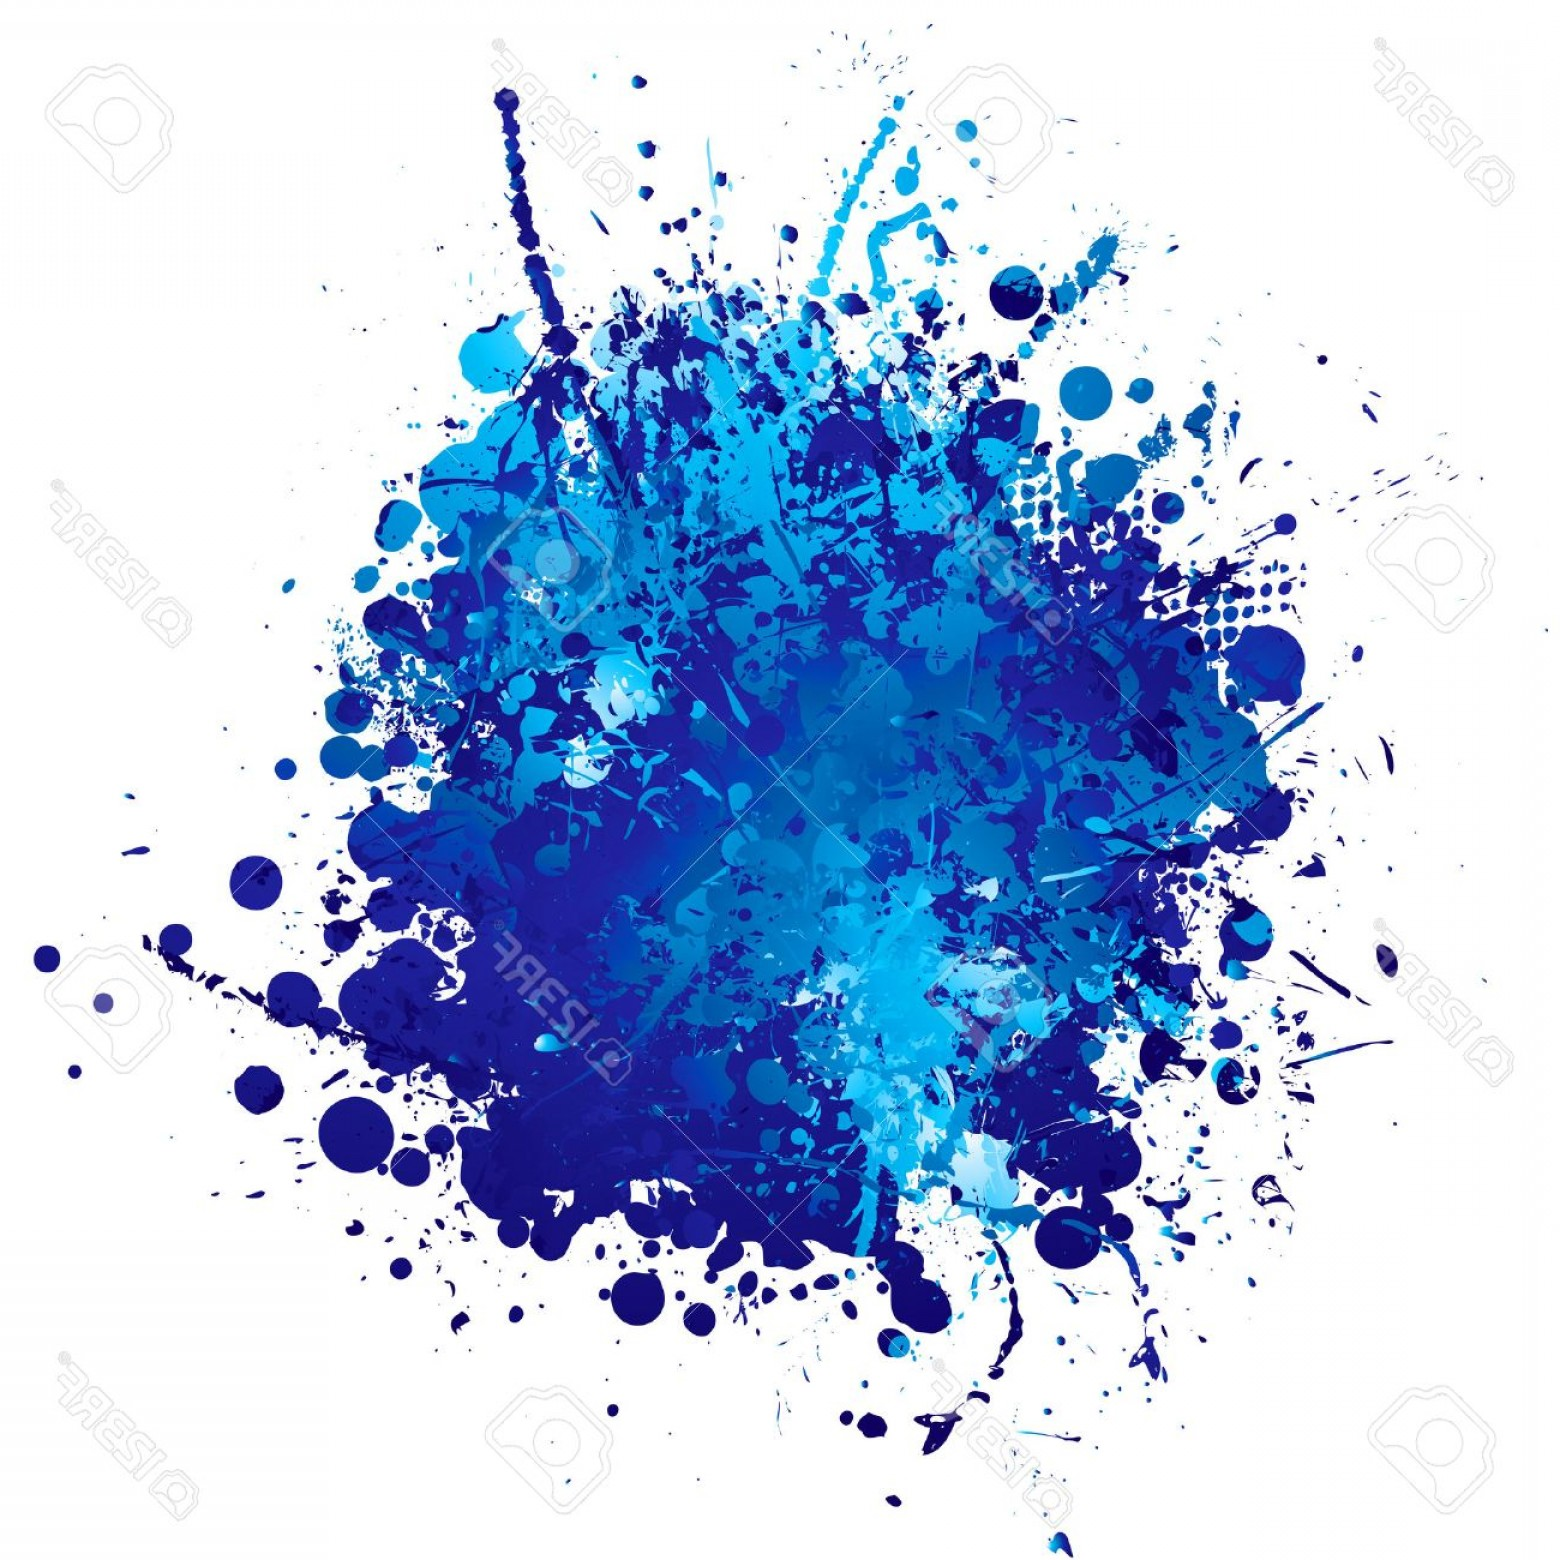 Blue Paint Splatter Vector: Photoshades Of Blue Abstract Ink Splat With White Background